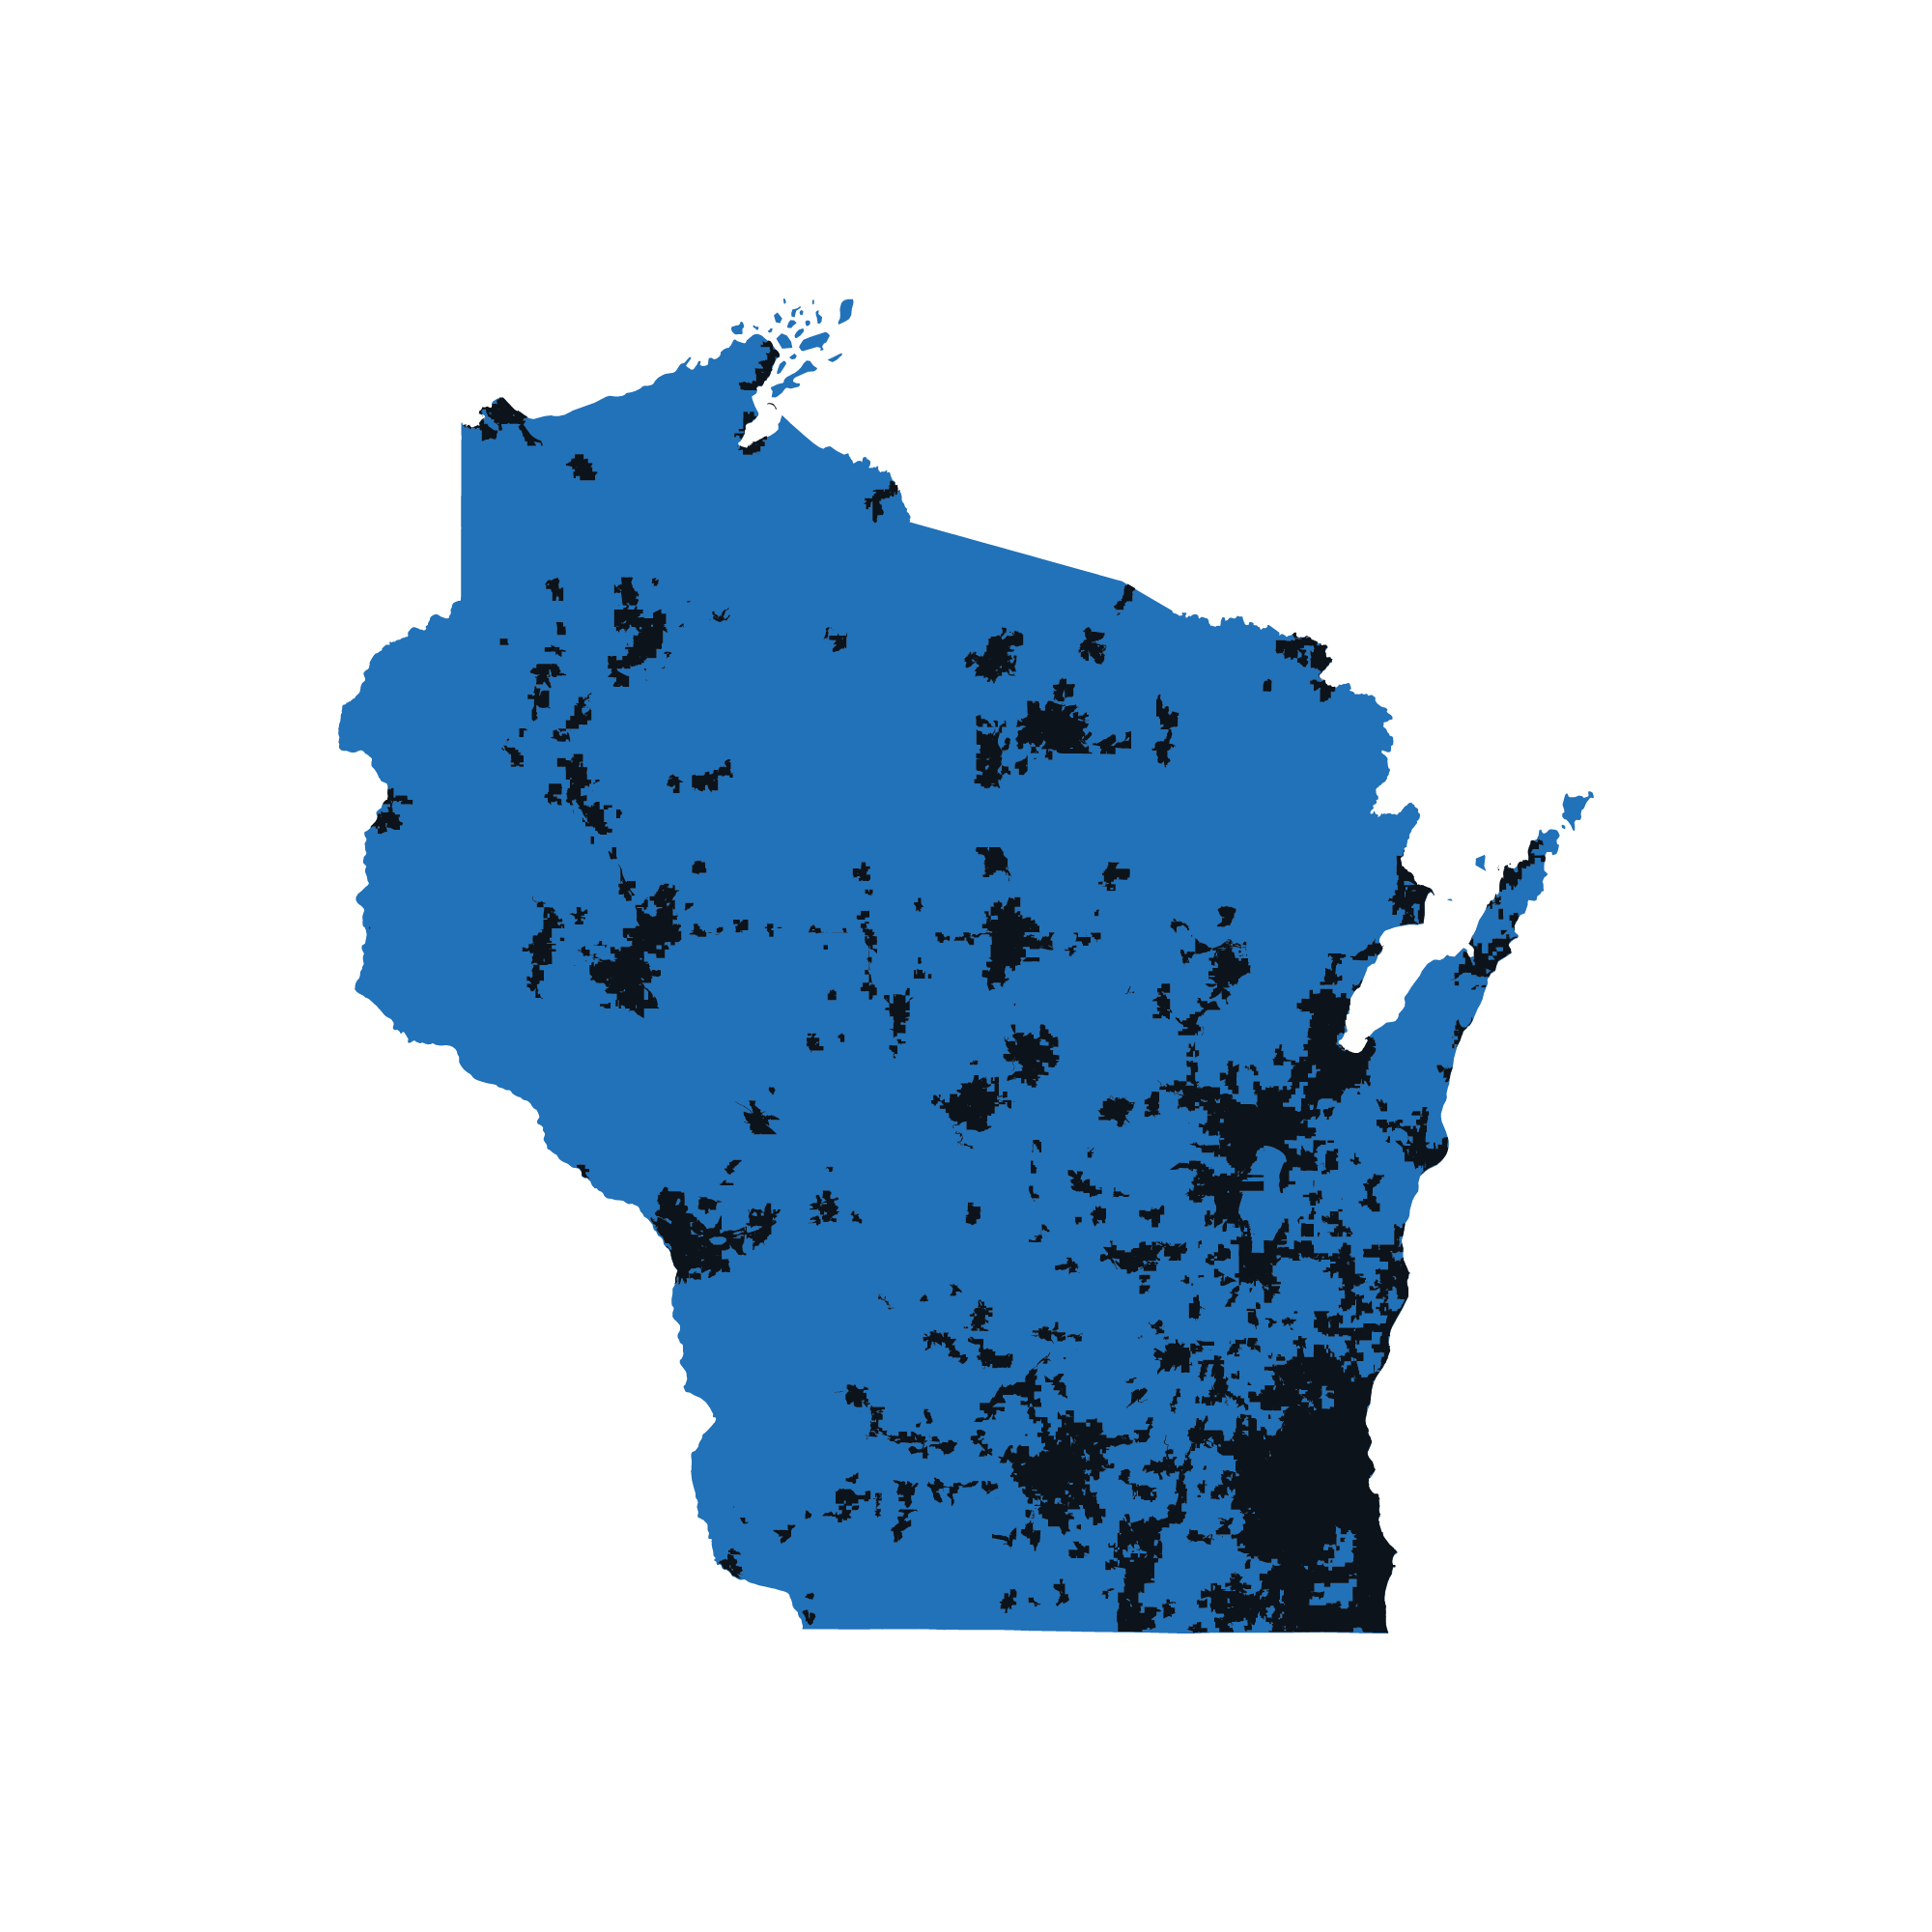 Wisconsin map data image